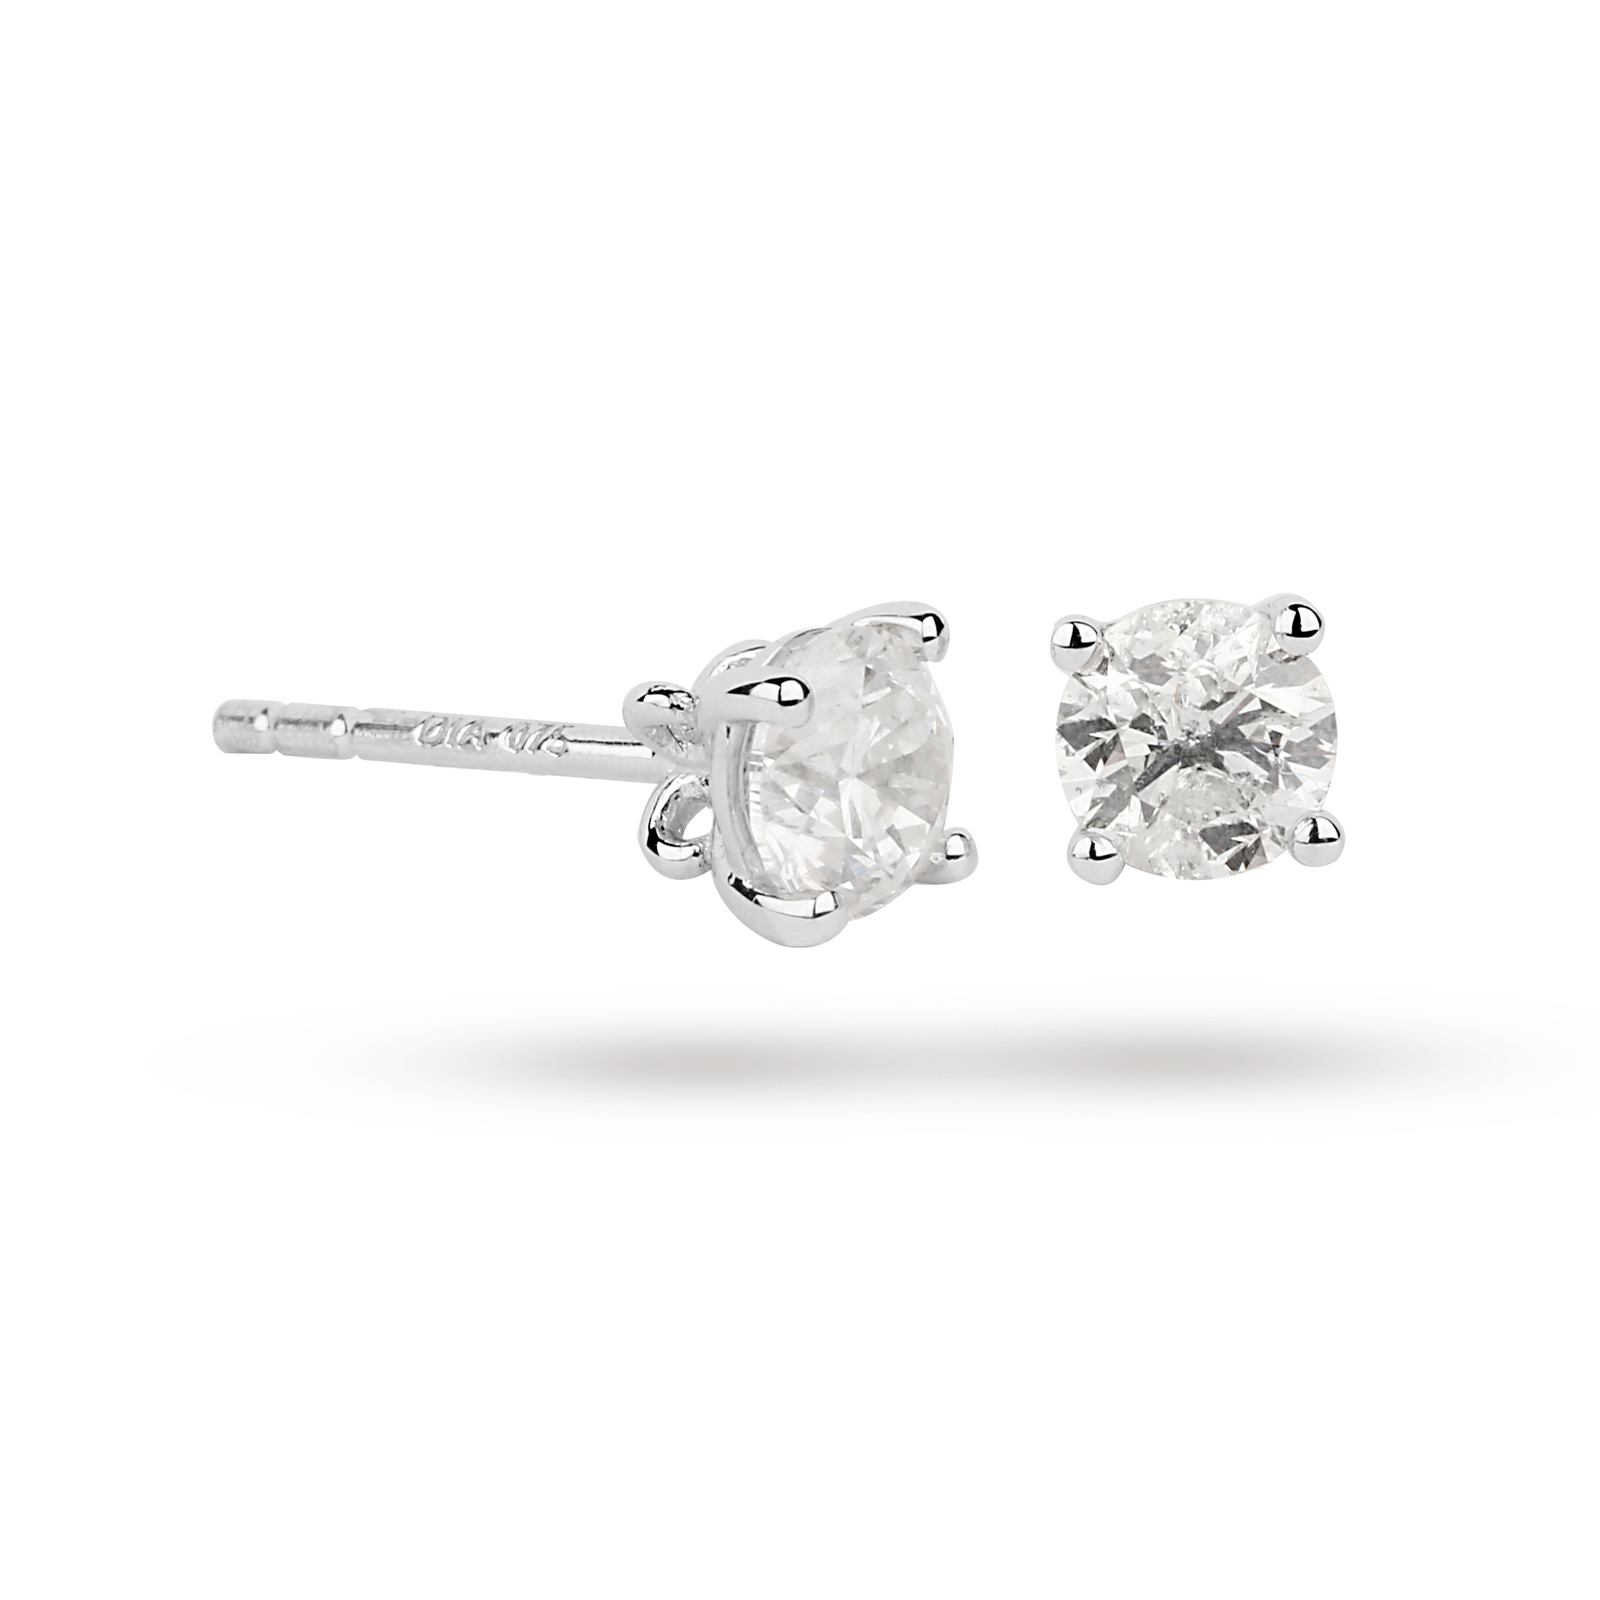 9ct White Gold 0.15ct Brilliant Cut Stud Earrings